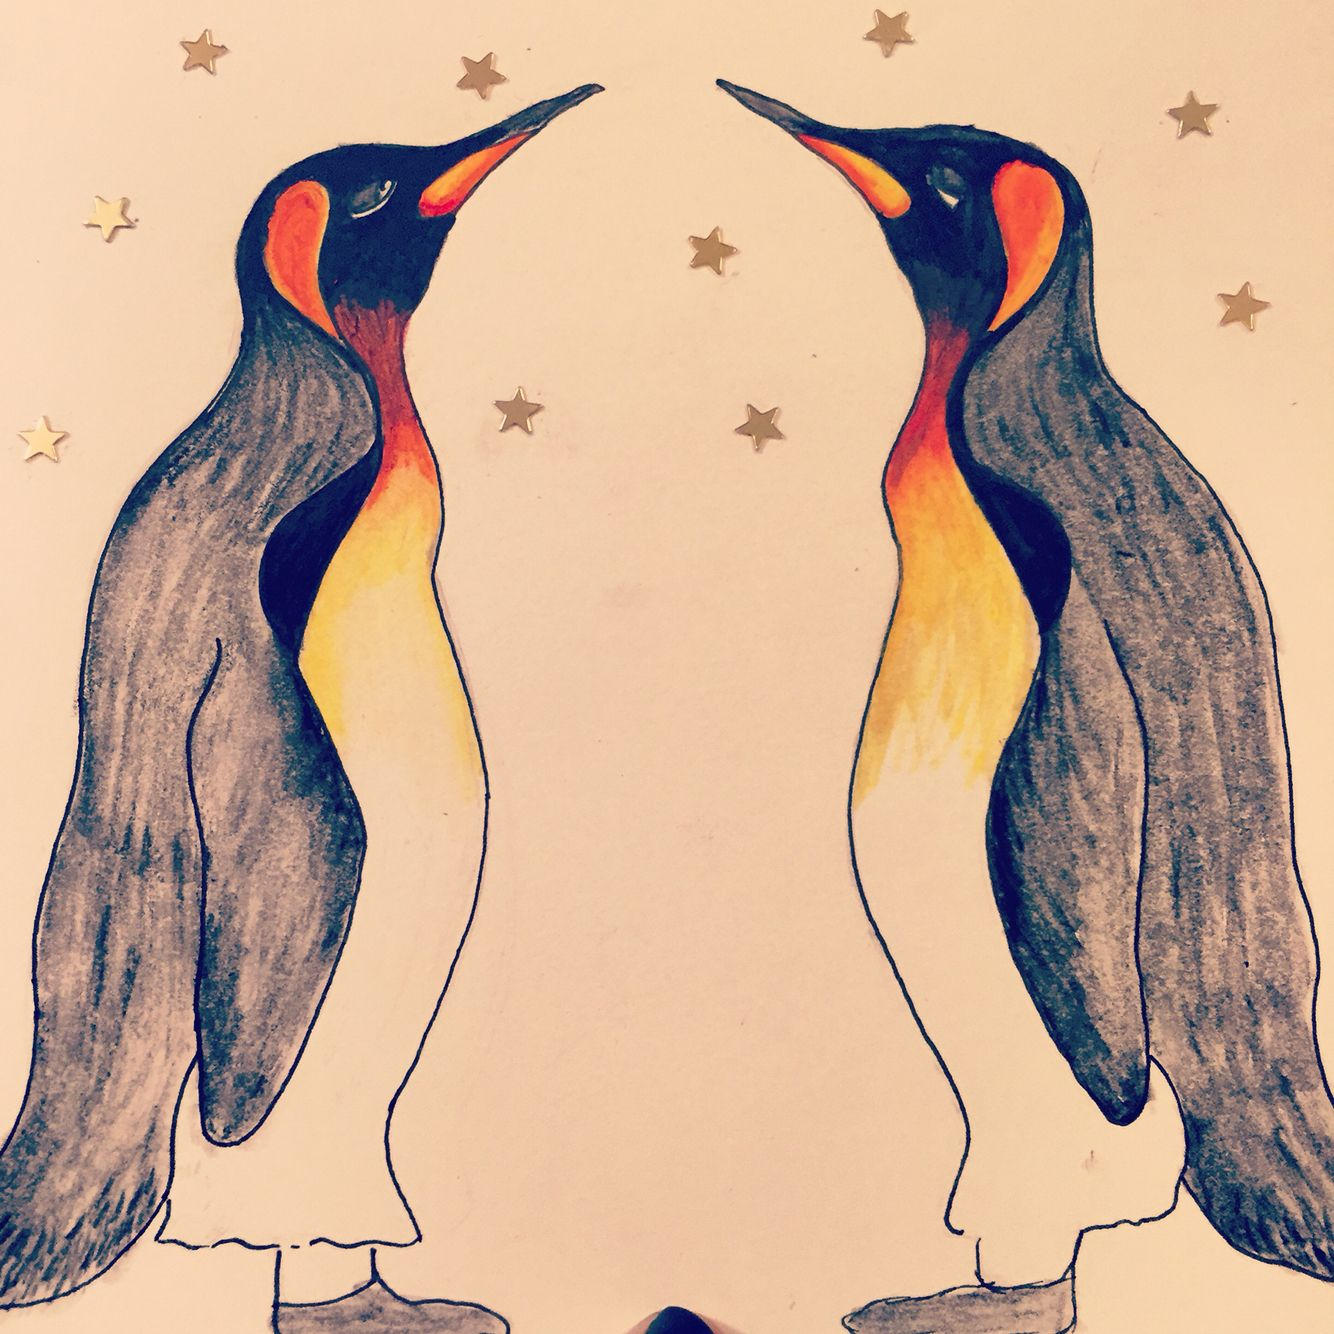 Penguin love  #penguin #christmas #cards #cute #couple #merrychristmas #design #watercolour #drawing